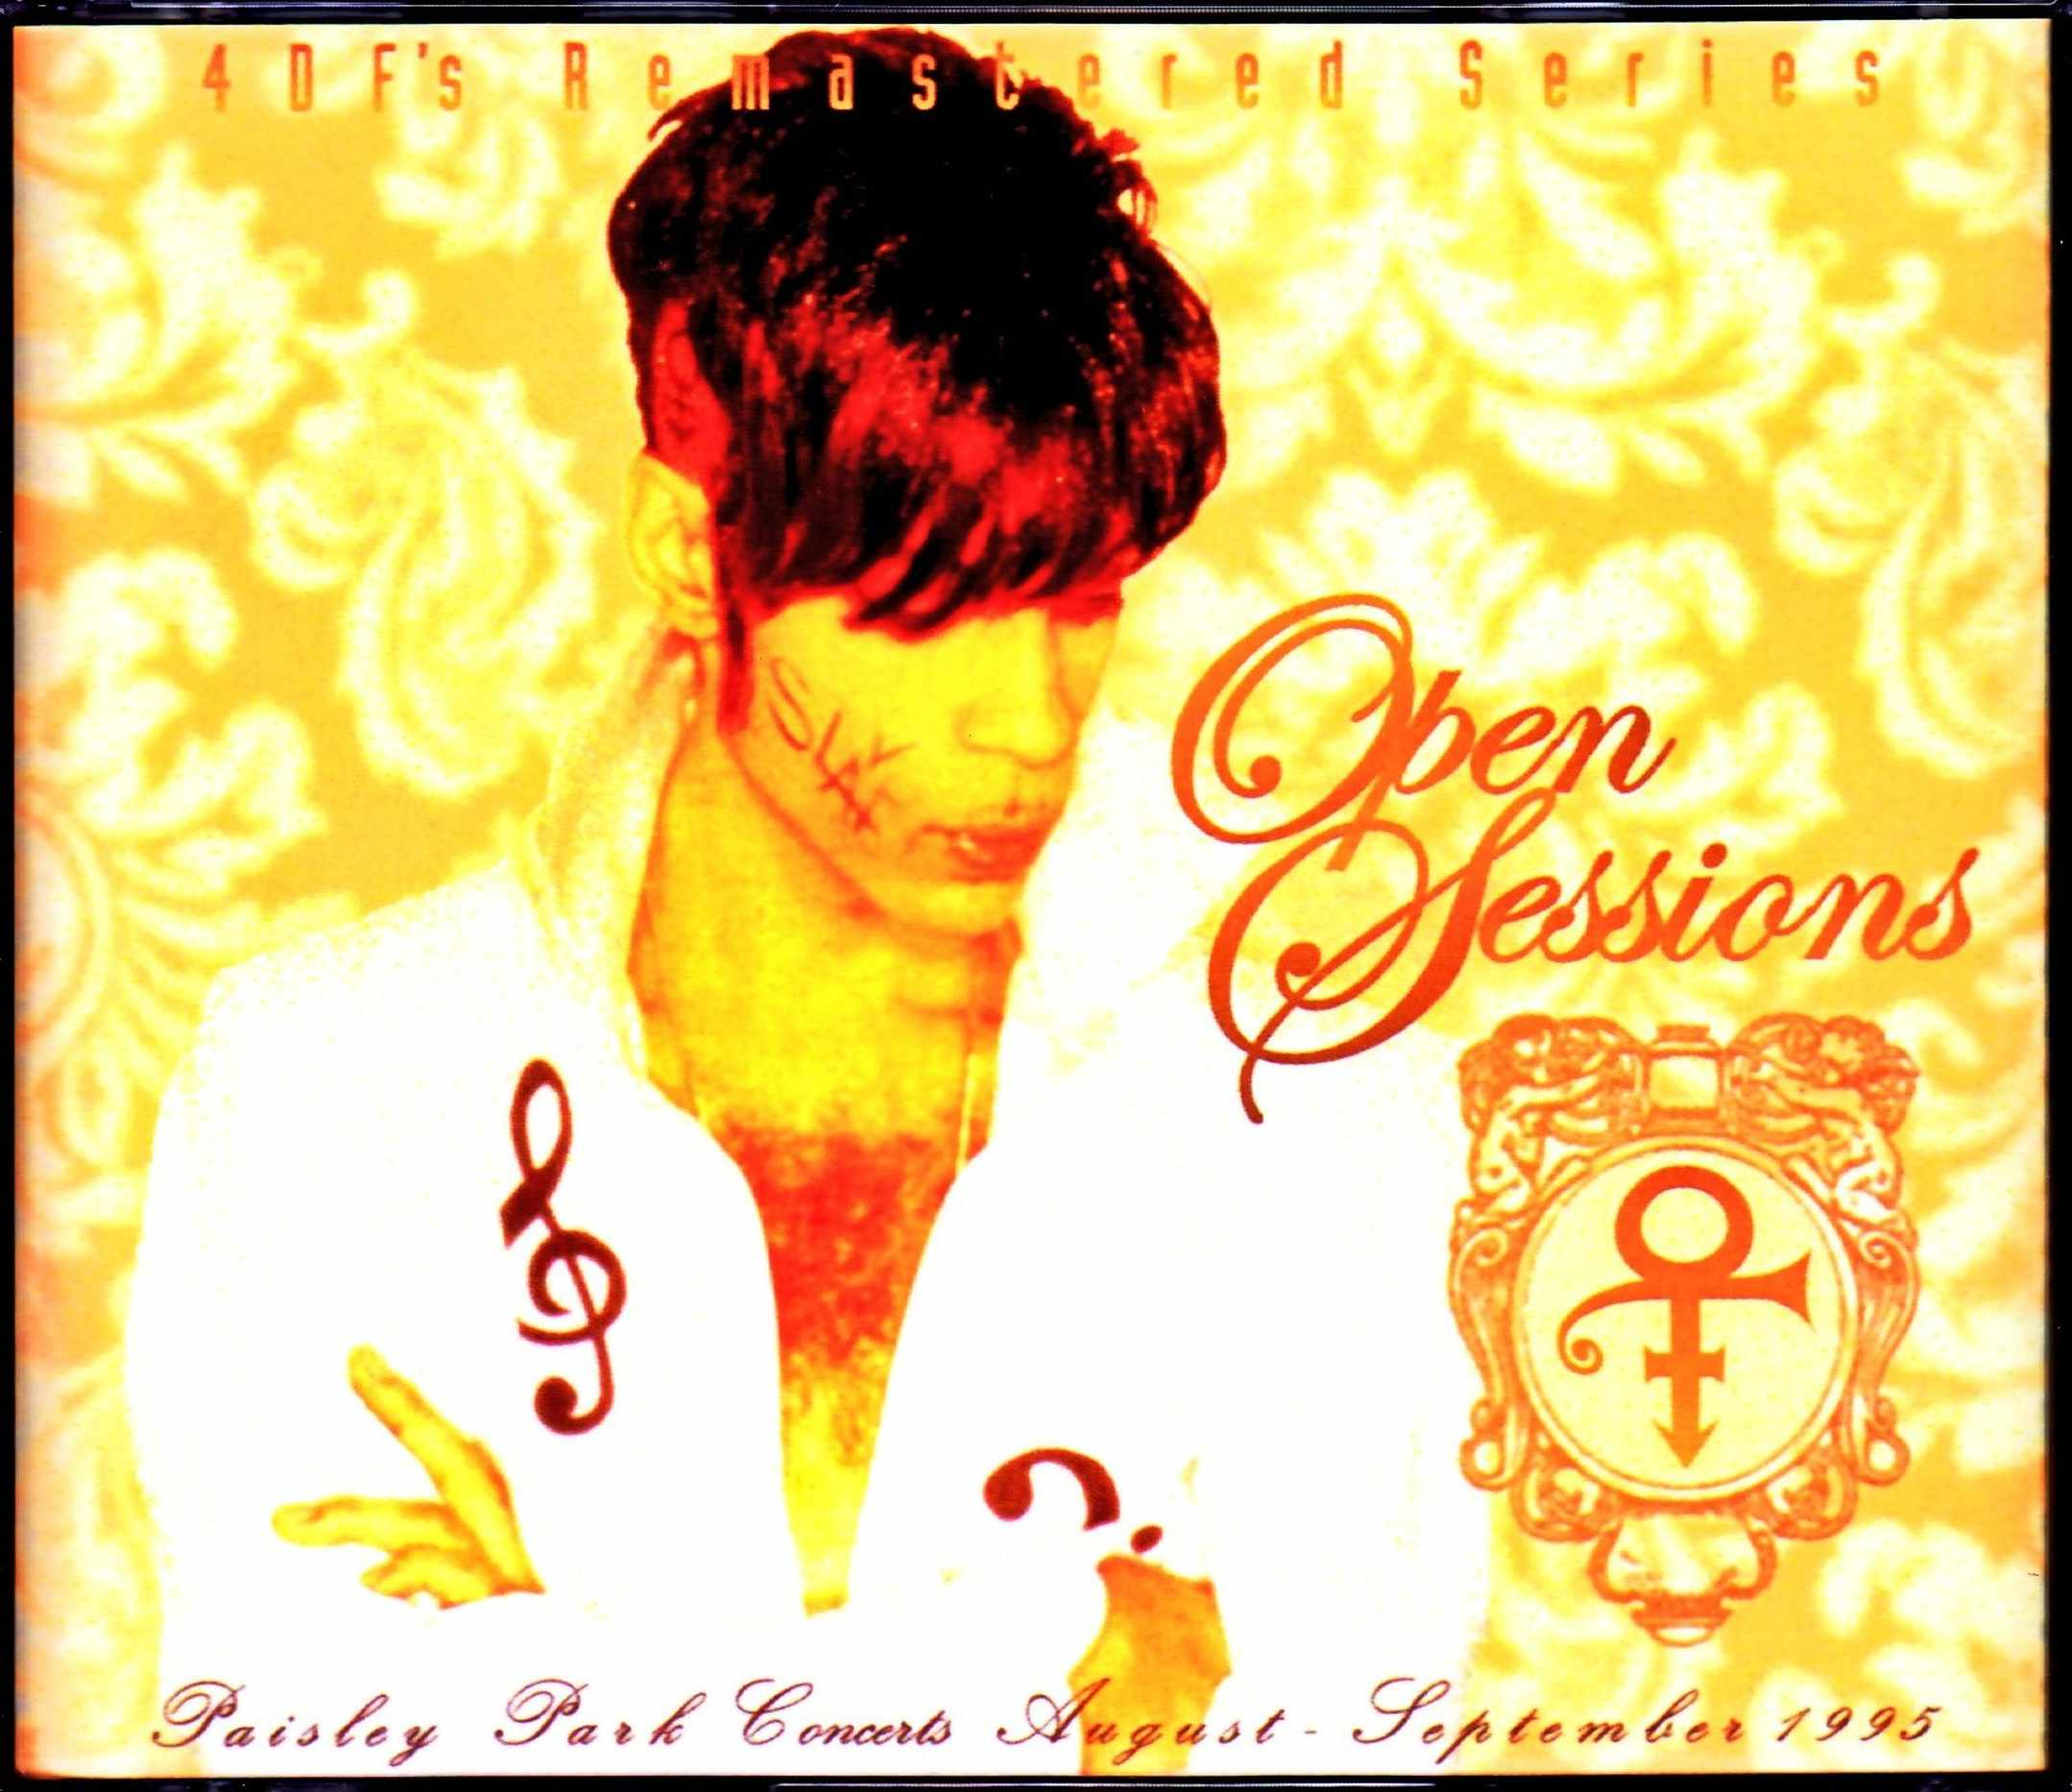 Prince プリンス/MN,USA Open Sessions 1995